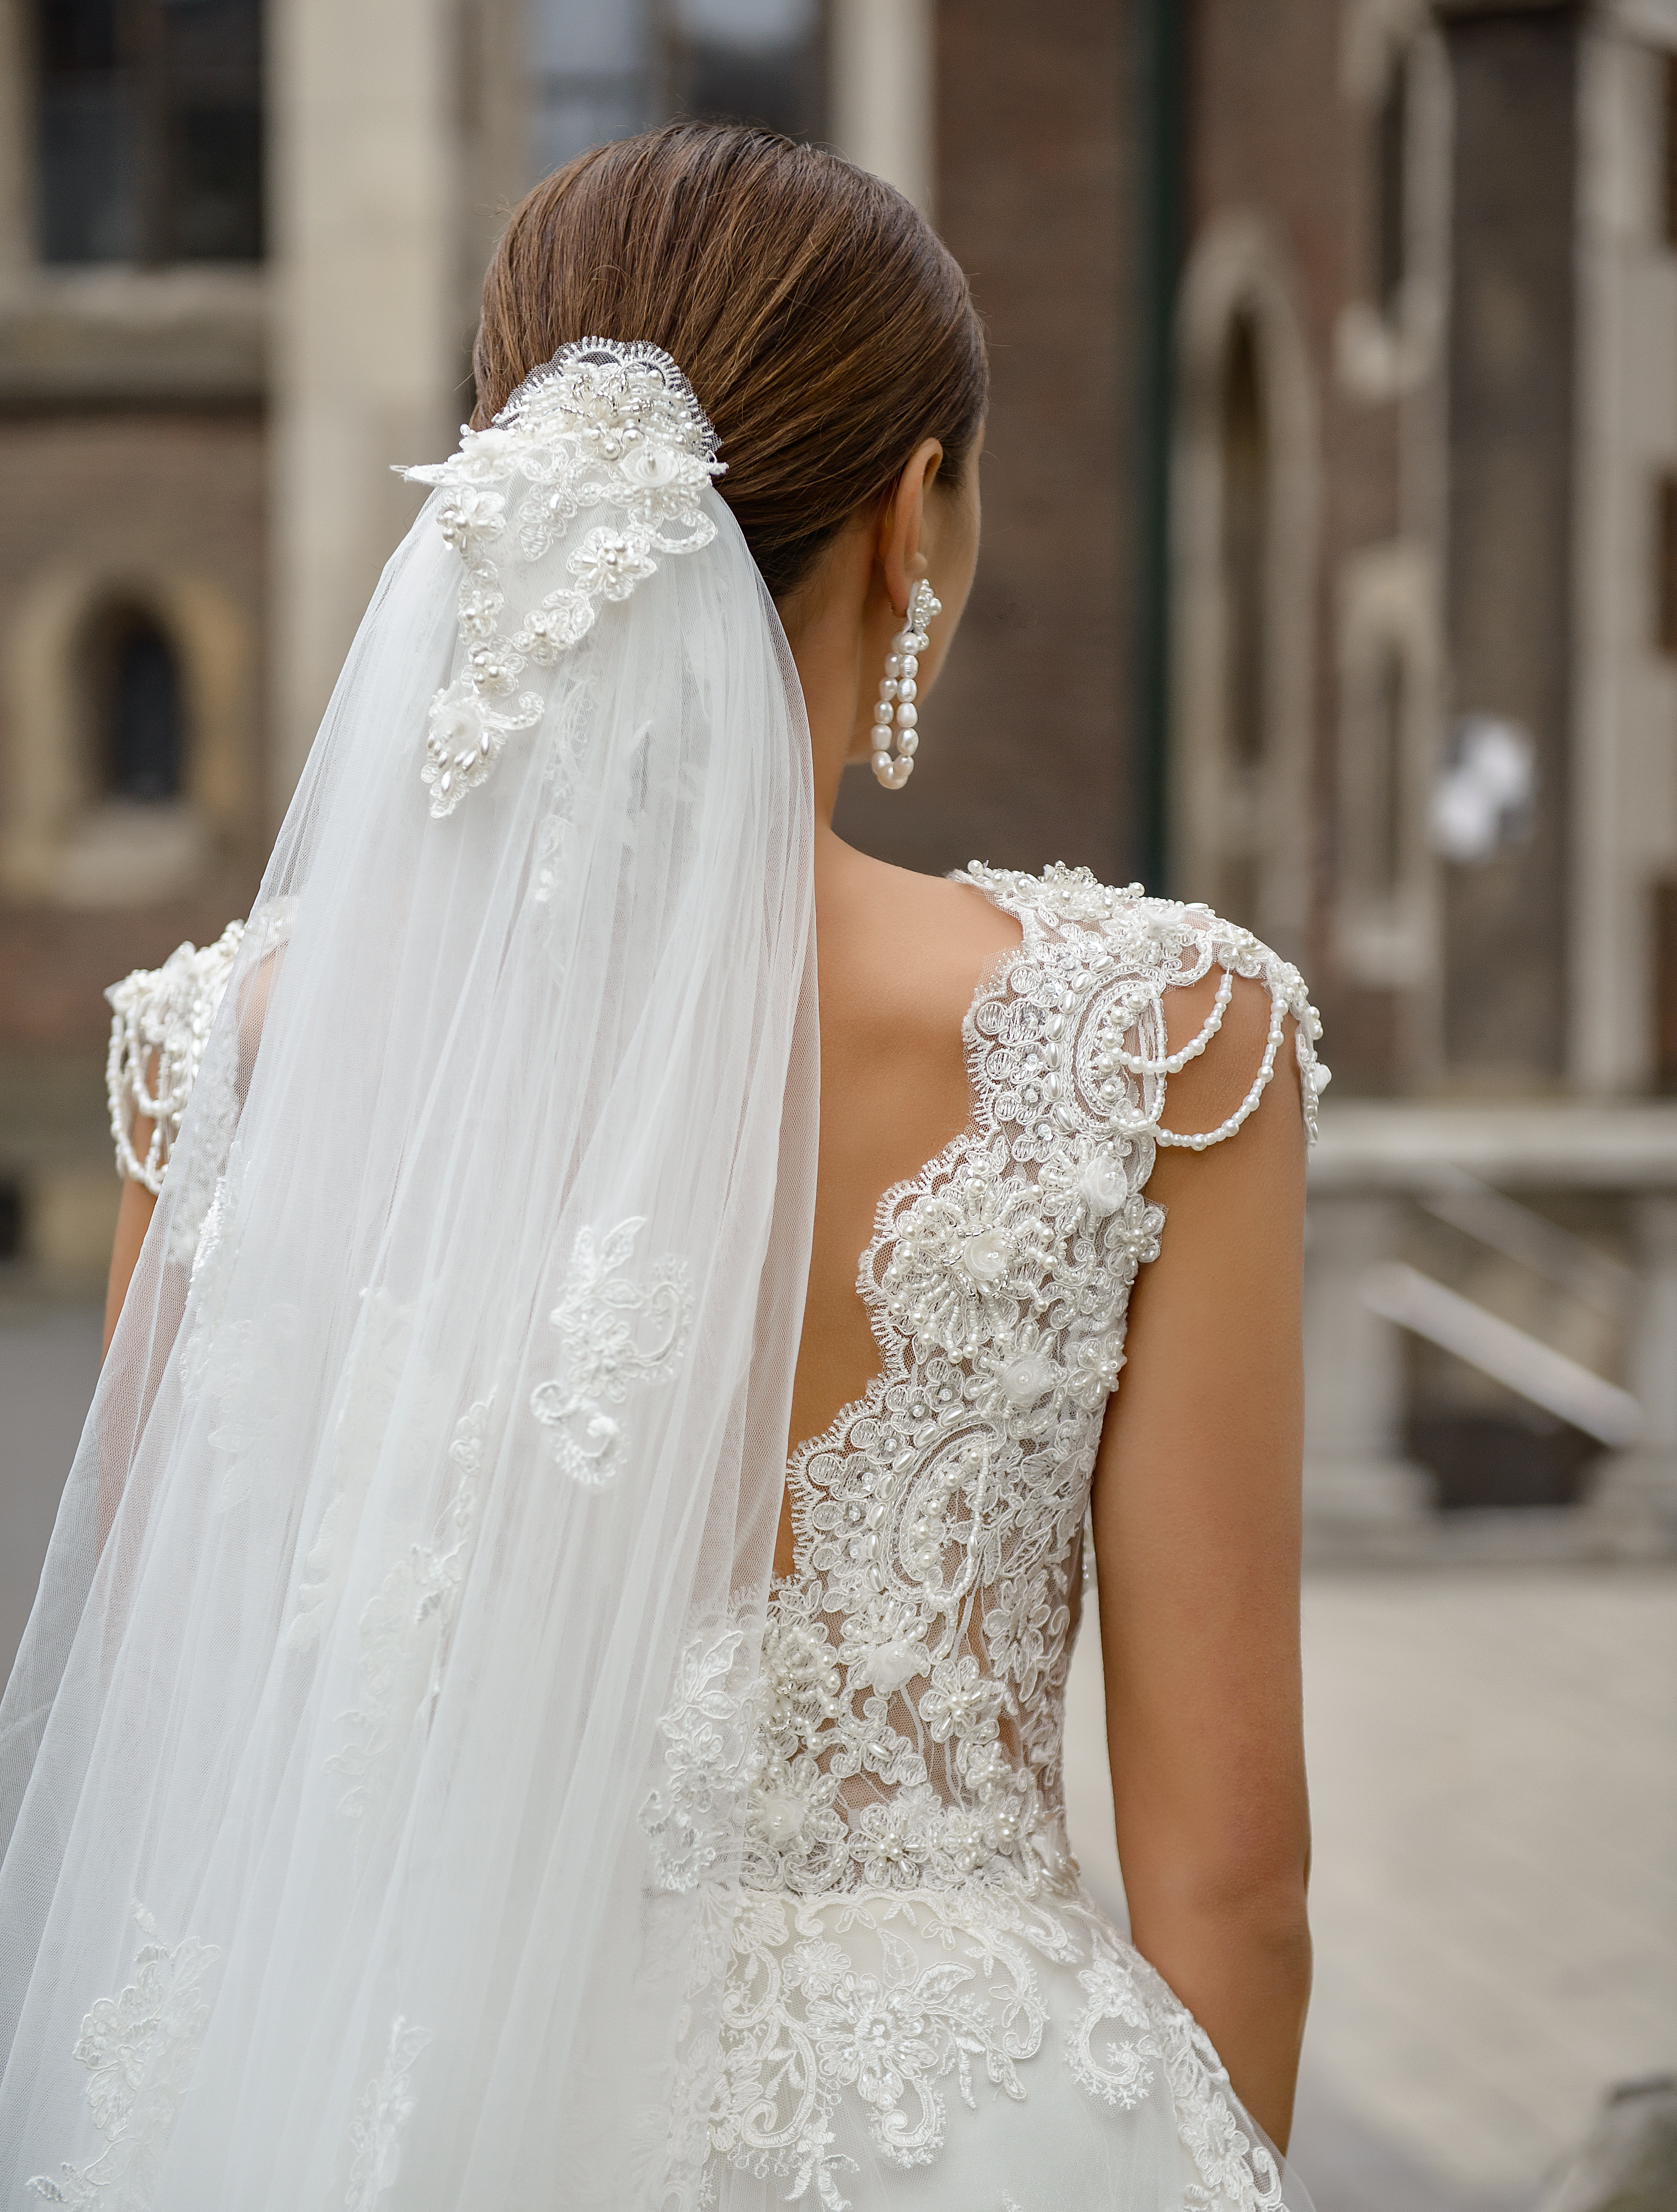 Wedding veil with beads, pearls on wholesale from manufacturer Super Nova-1